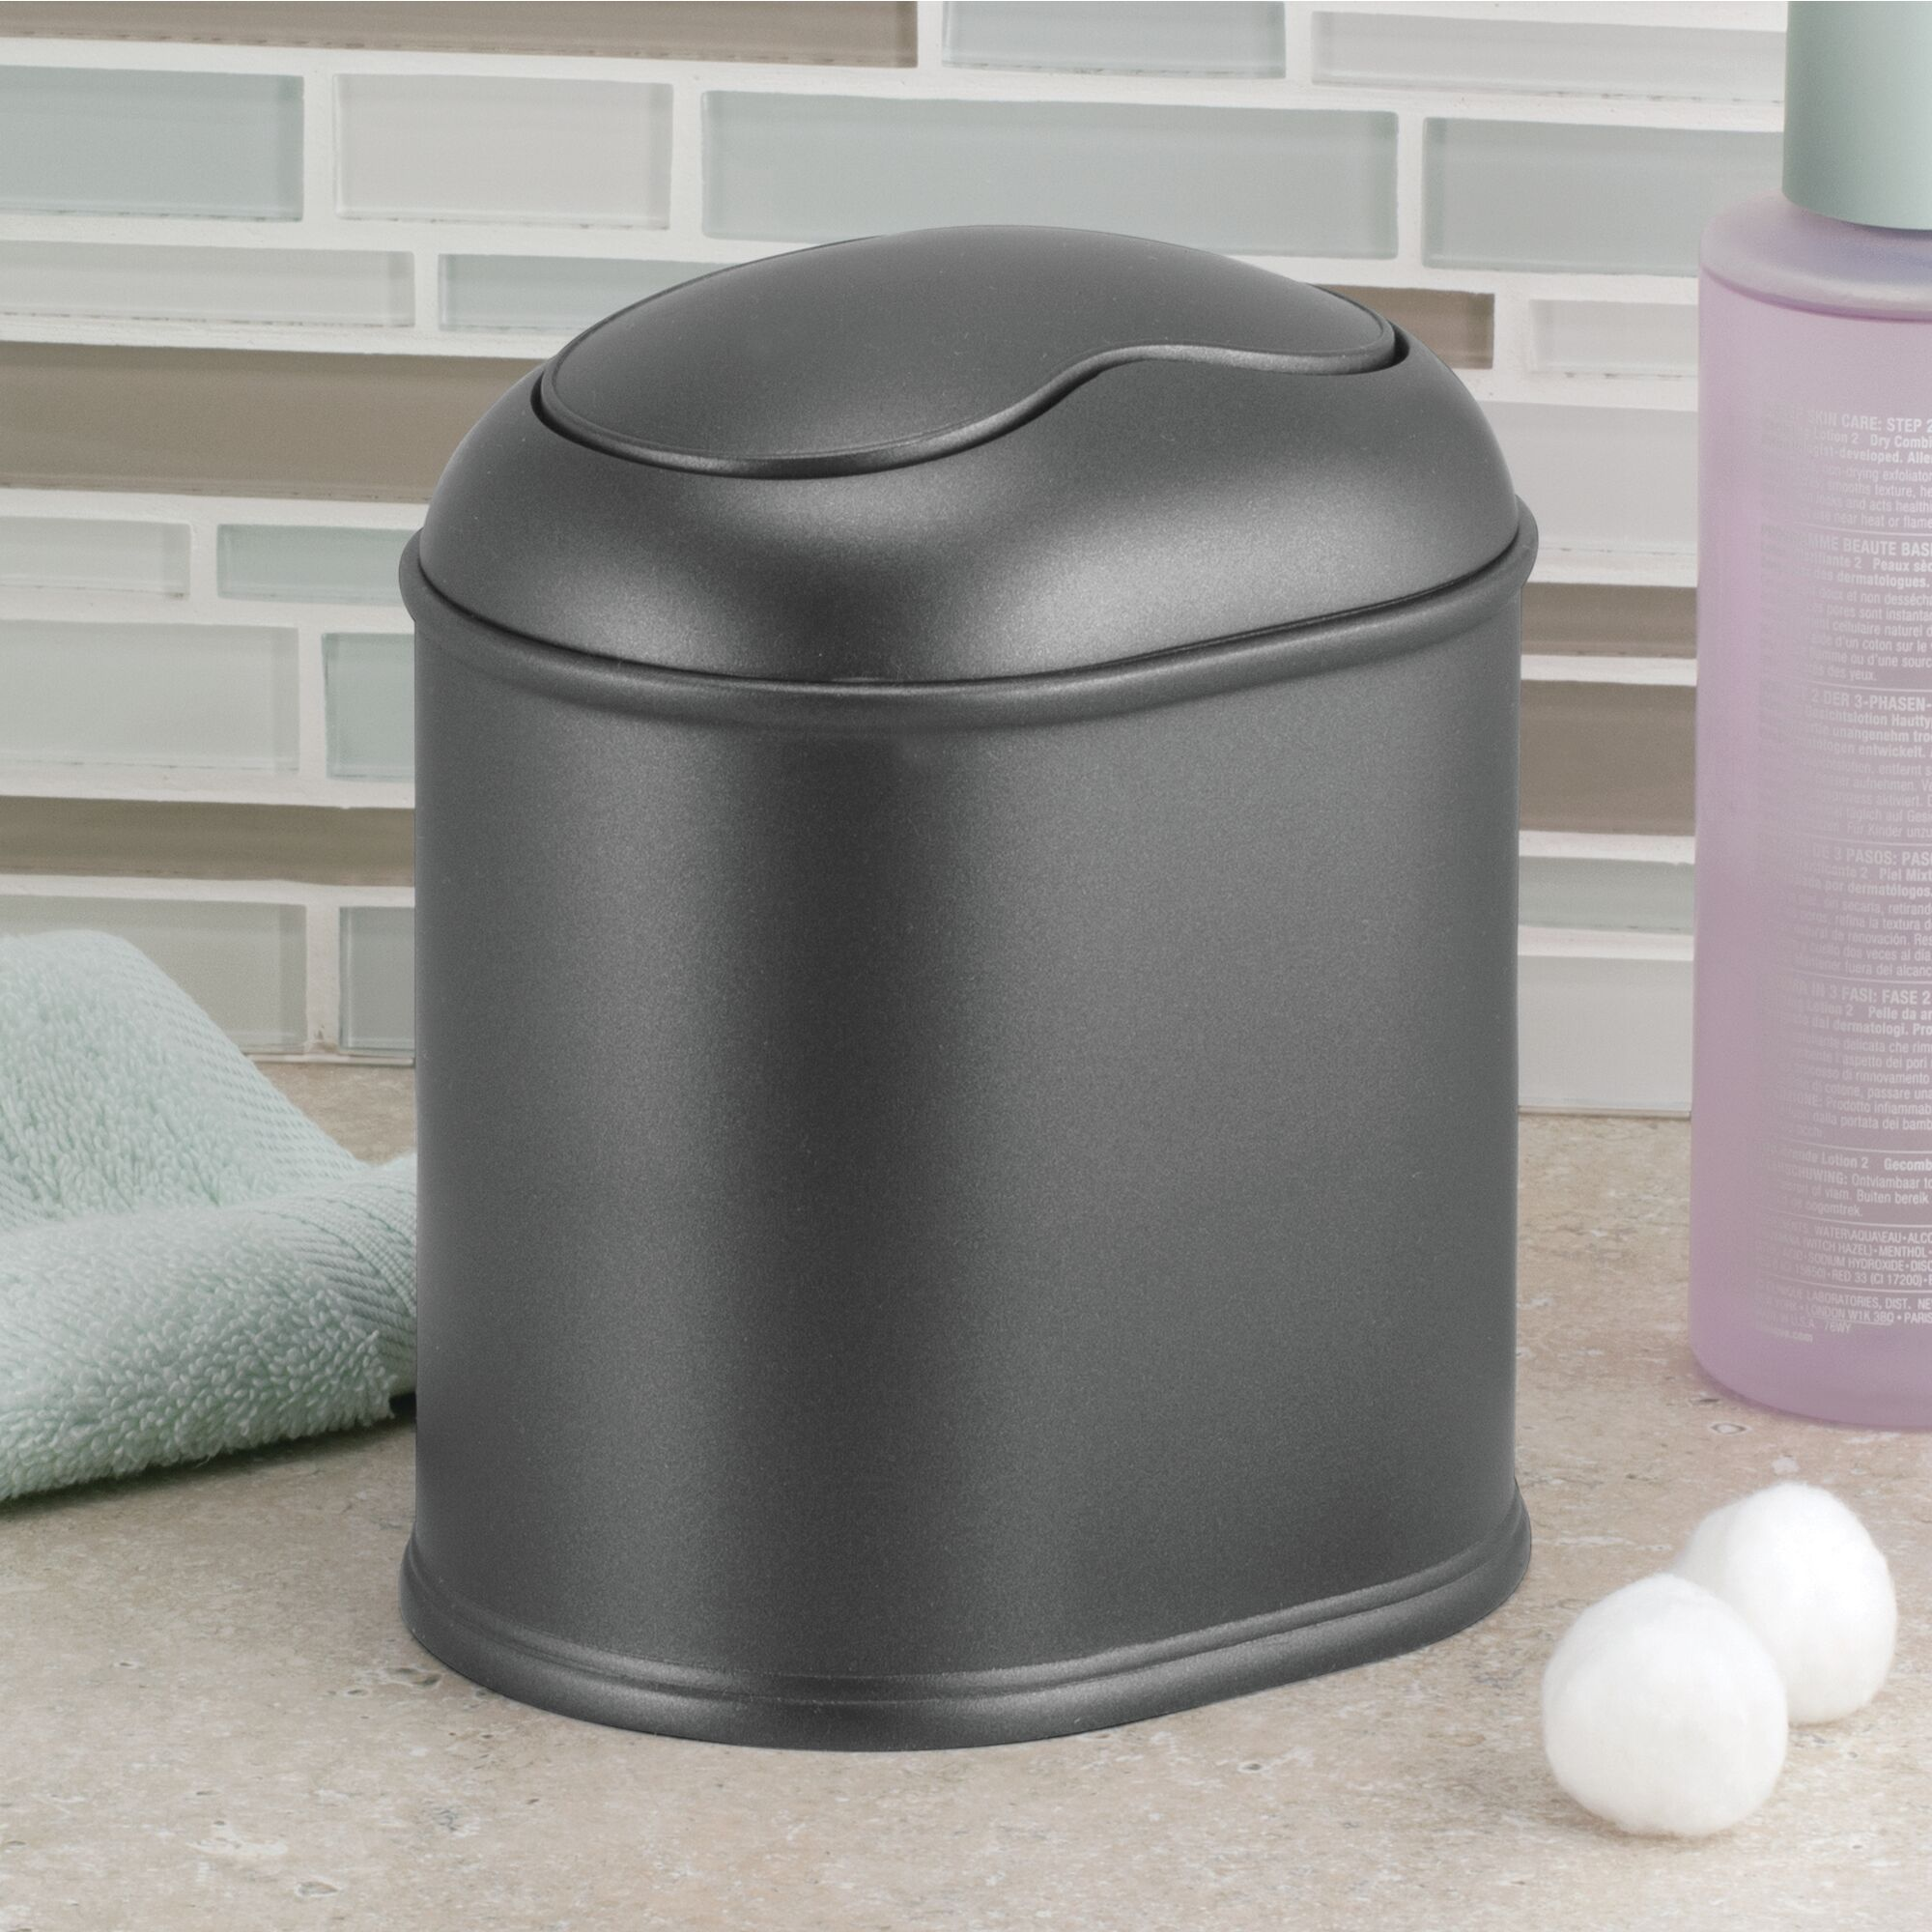 mdesign mini trash can with swing lid for bath vanity | ebay